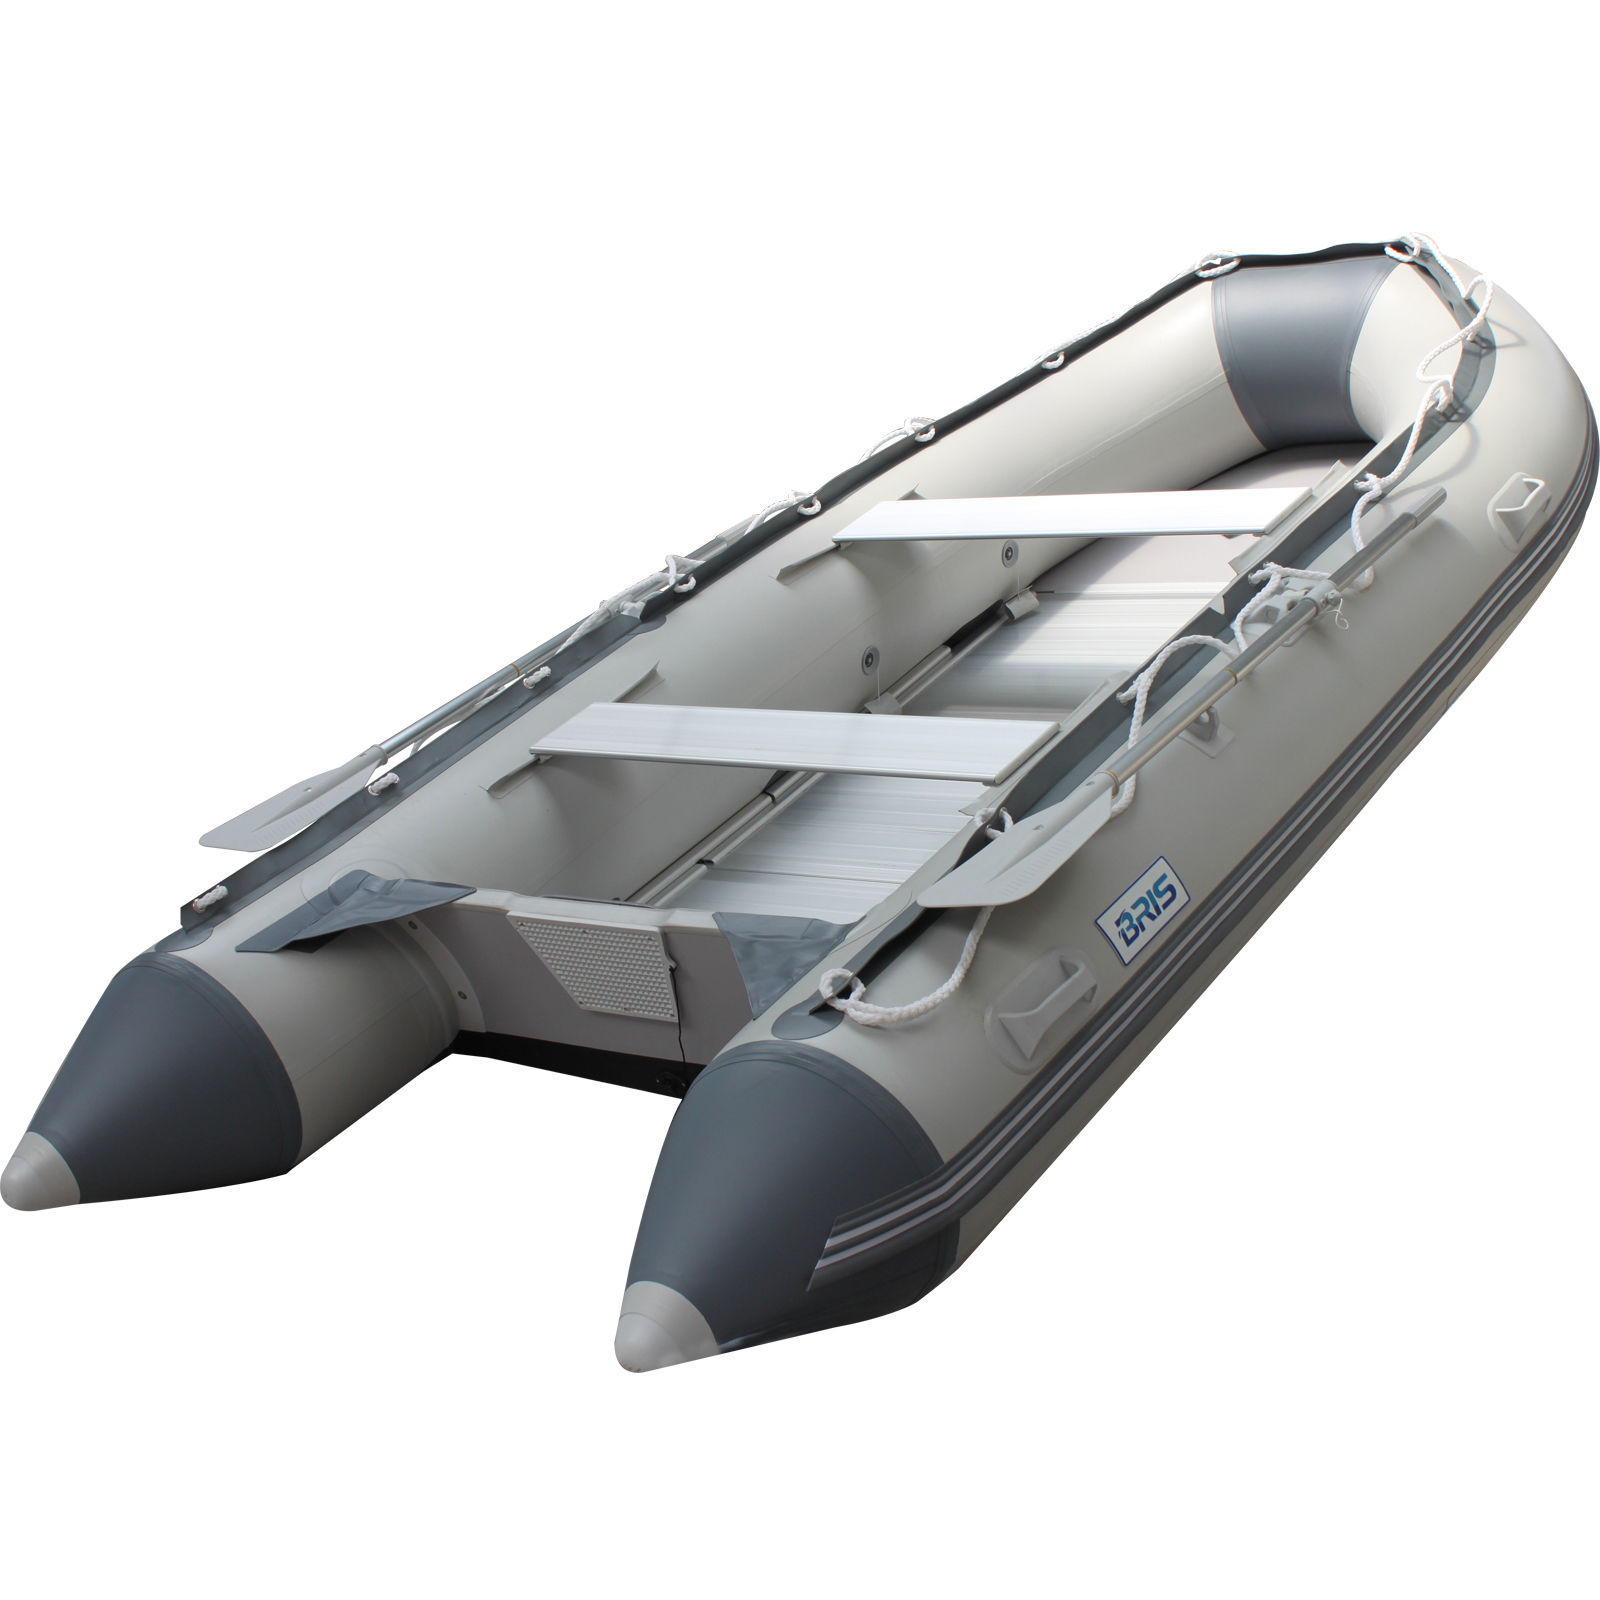 10.8 ft Inflatable Boat  Raft Fishing Dinghy Tender Pontoon Boat Gray